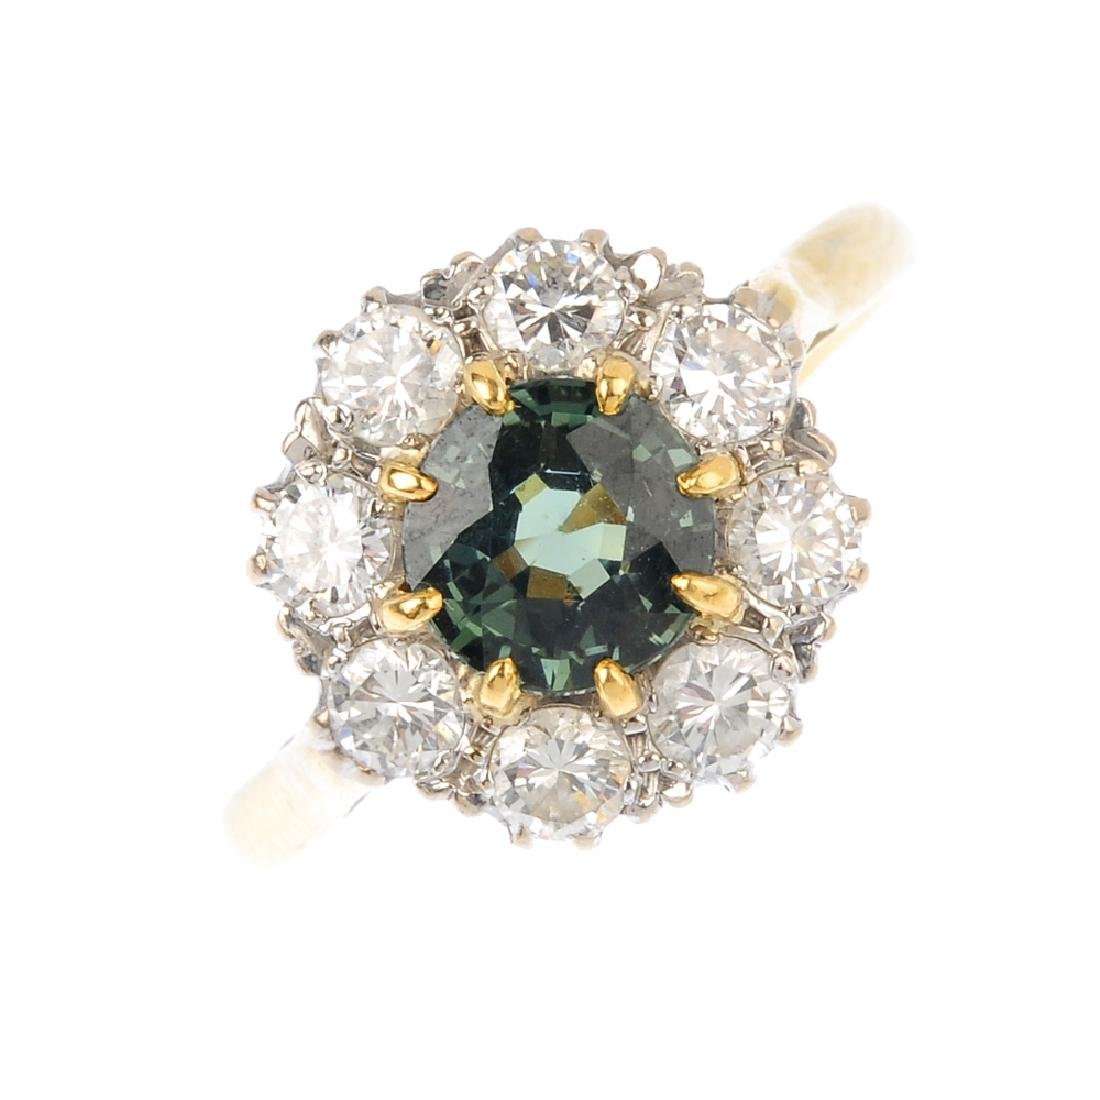 A sapphire and diamond cluster ring. The circular-shape